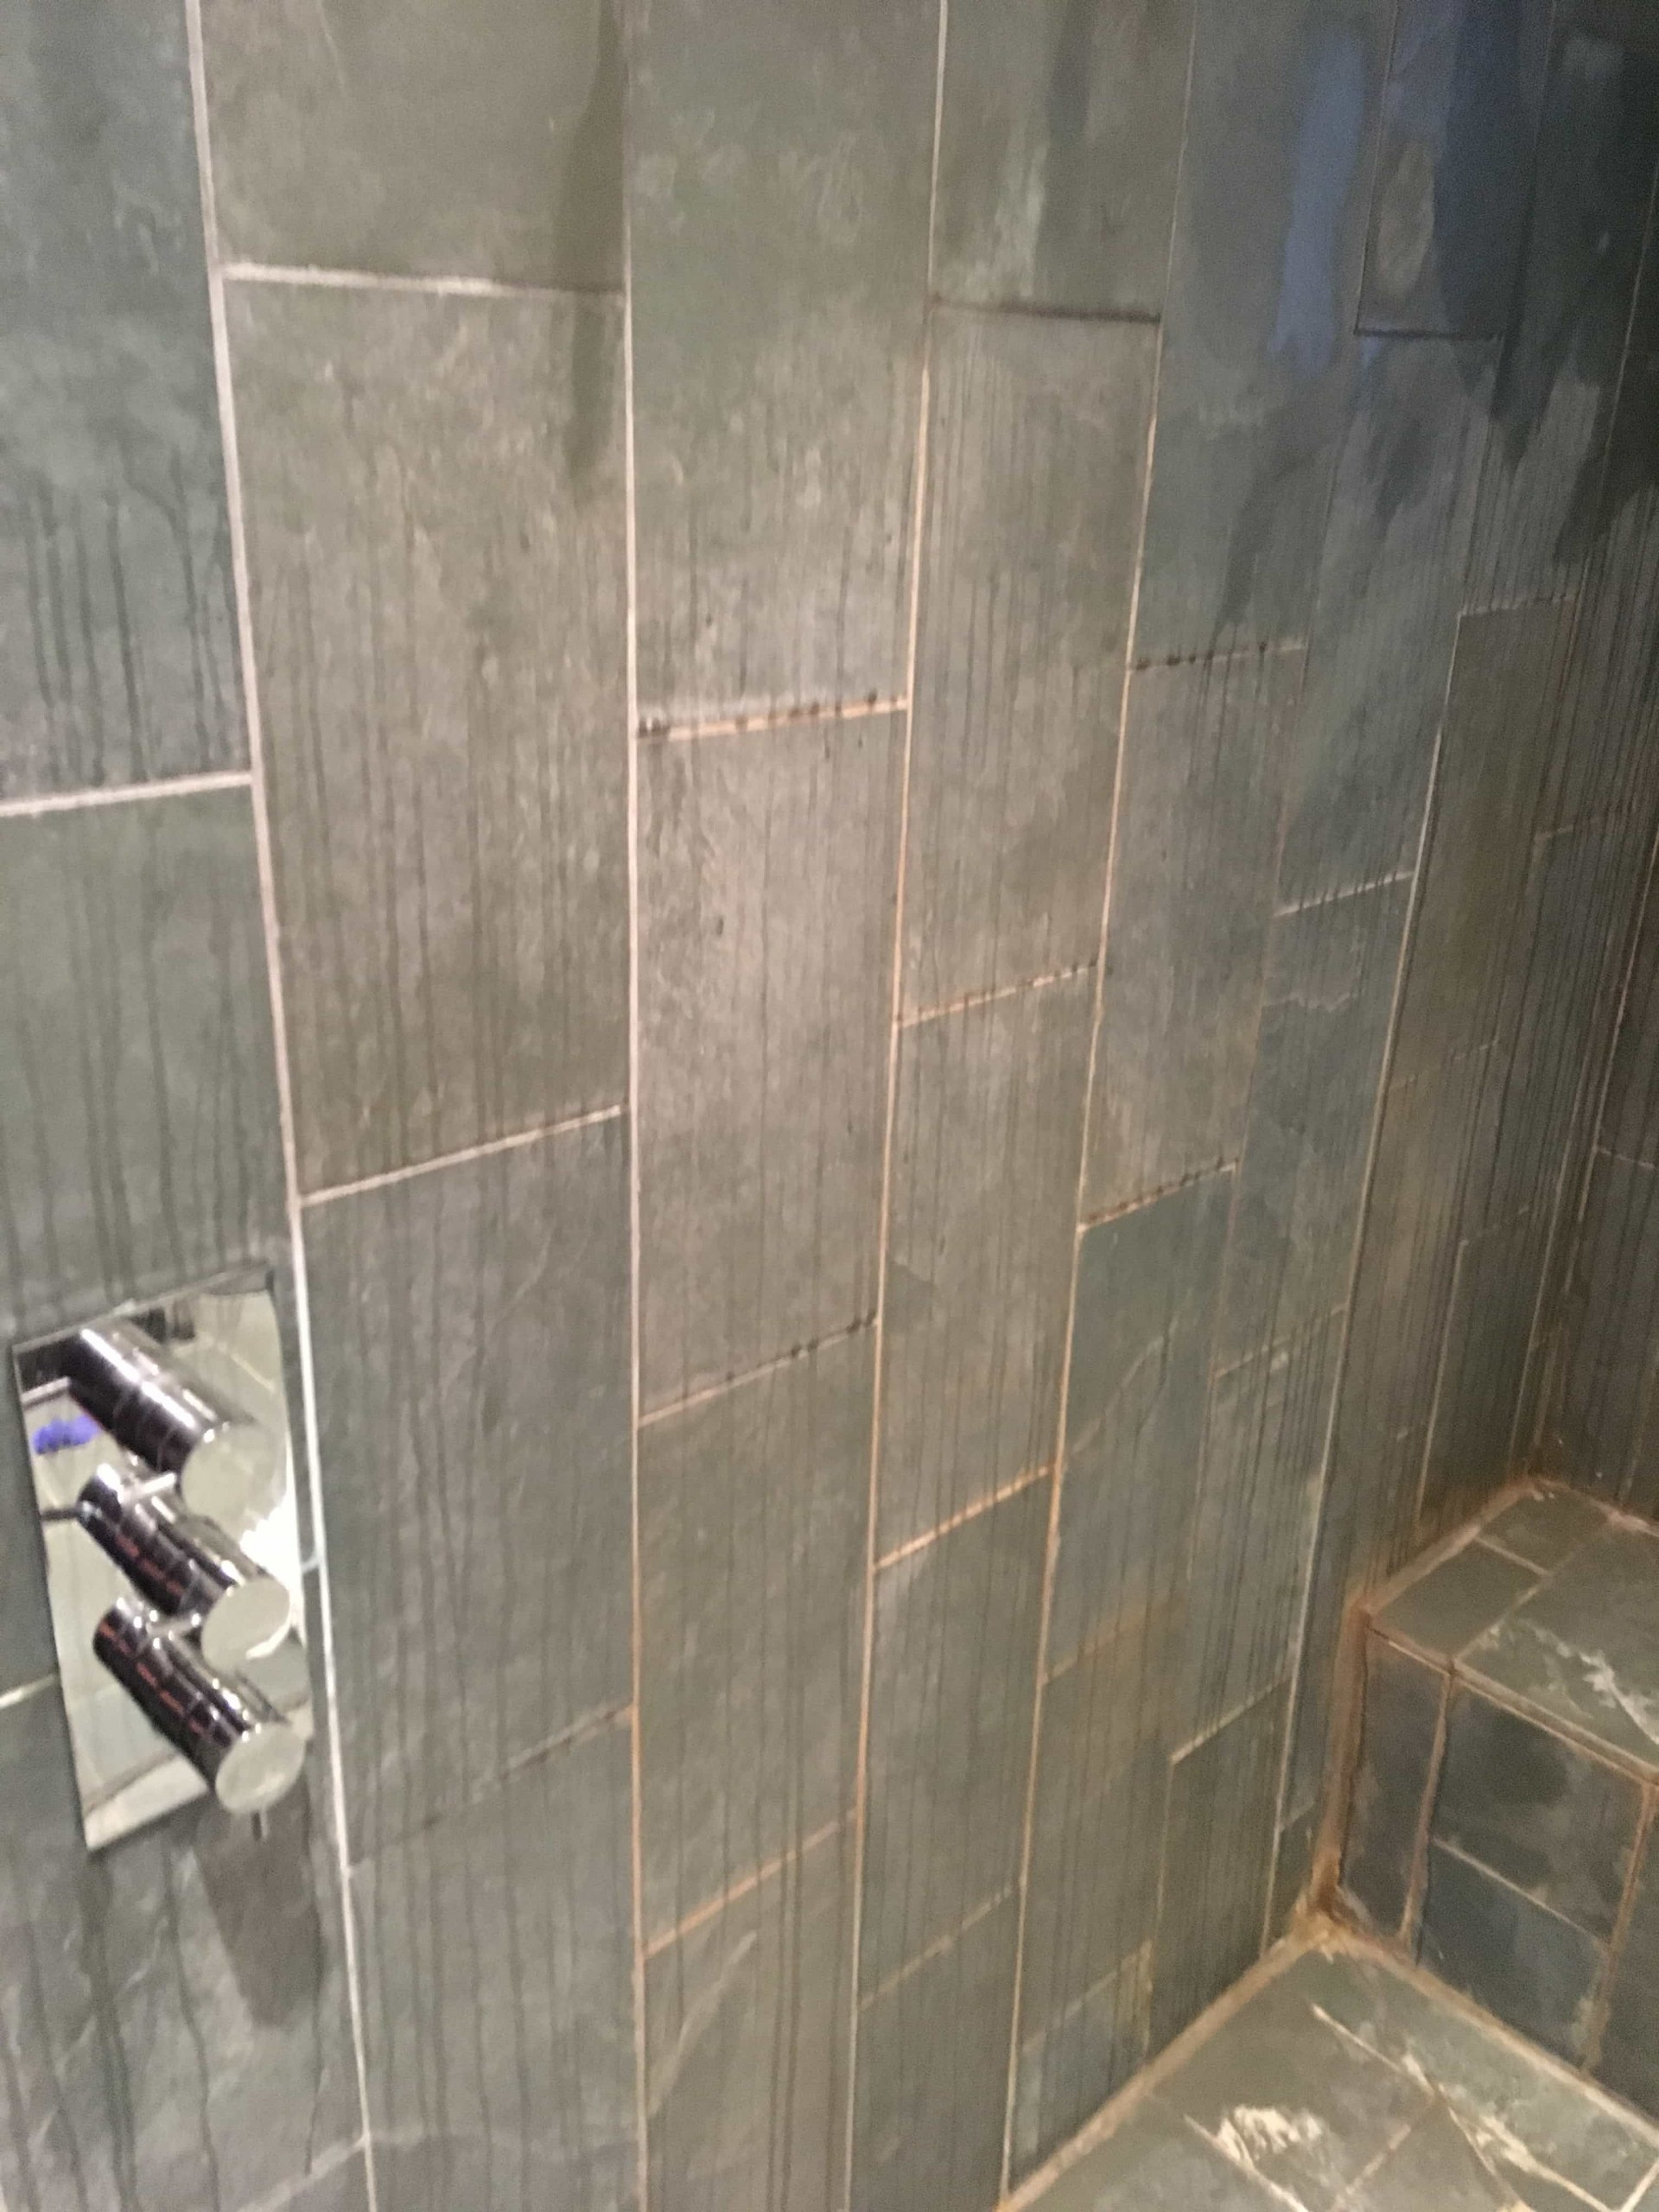 Limescale Stained Slate Shower Tiles Before Renovation in Teddington